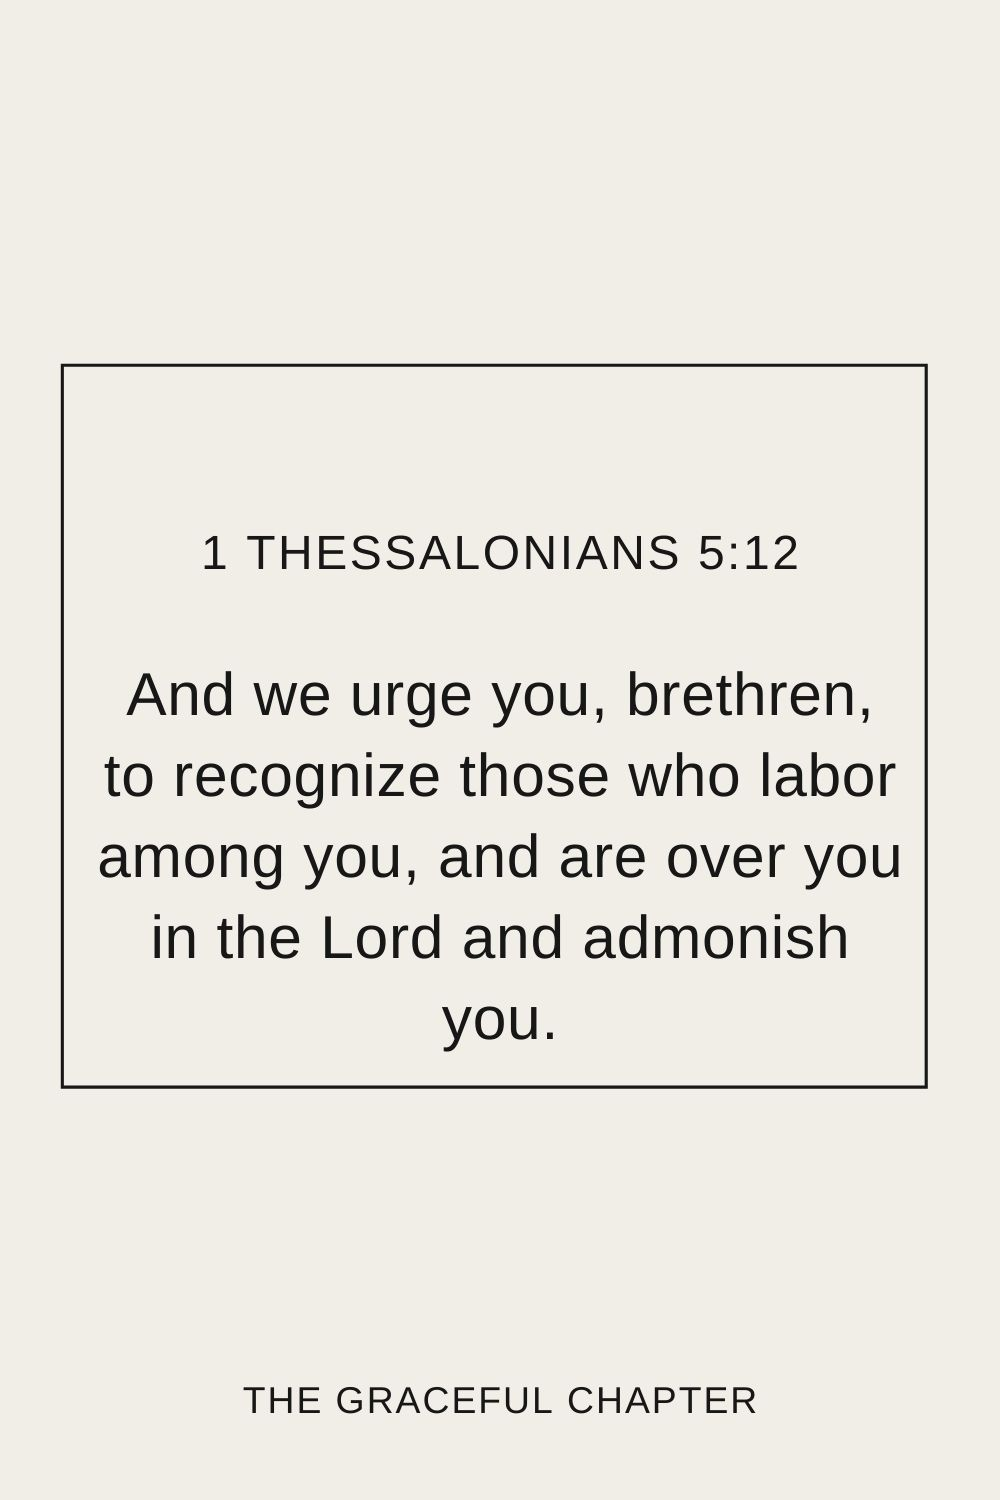 And we urge you, brethren, to recognize those who labor among you, and are over you in the Lord and admonish you. 1 Thessalonians 5:12